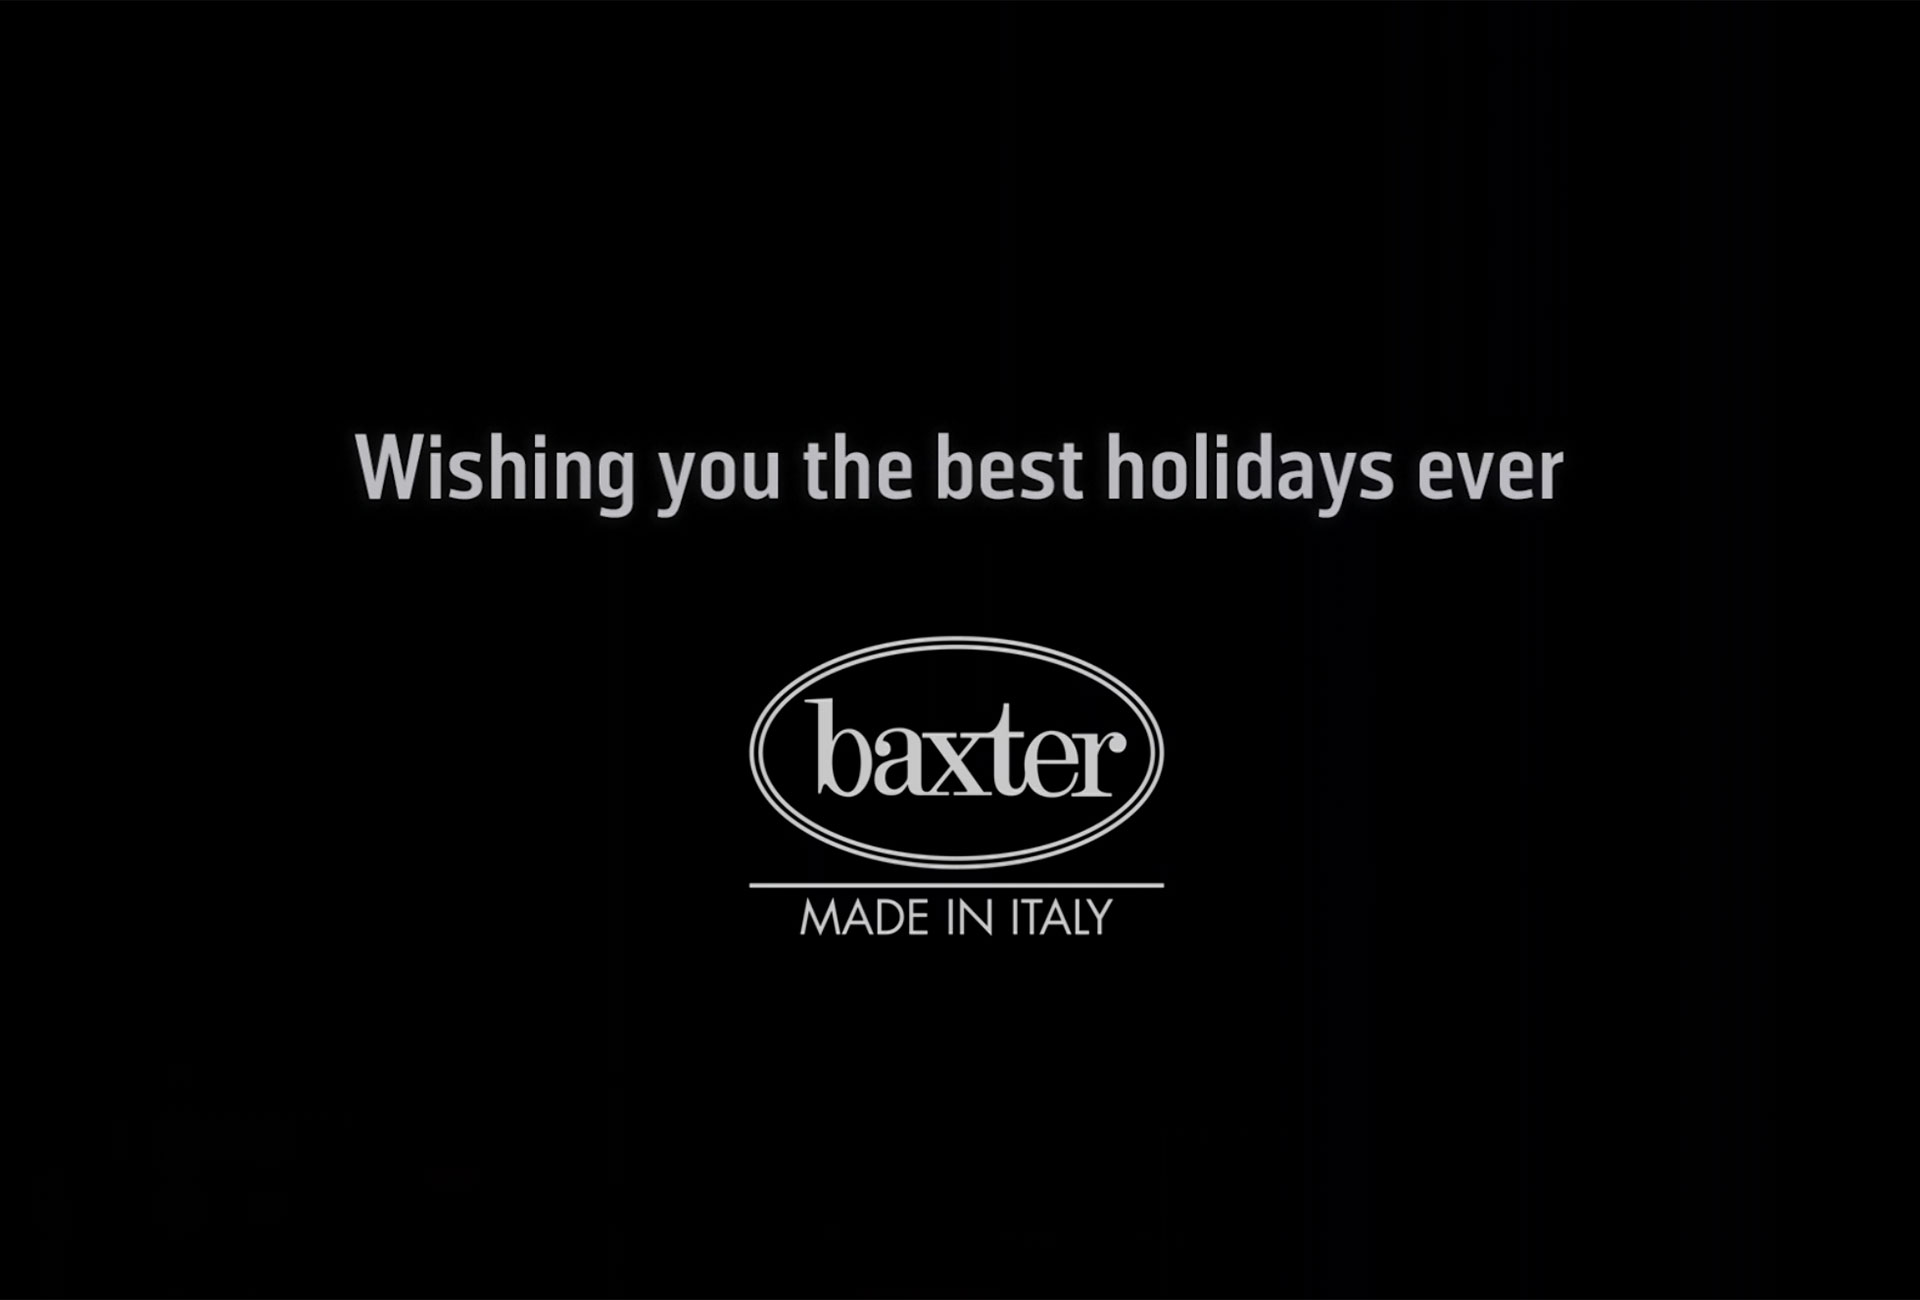 WISHING YOU THE BEST HOLIDAYS EVER | BAXTER CHRISTMAS 2018